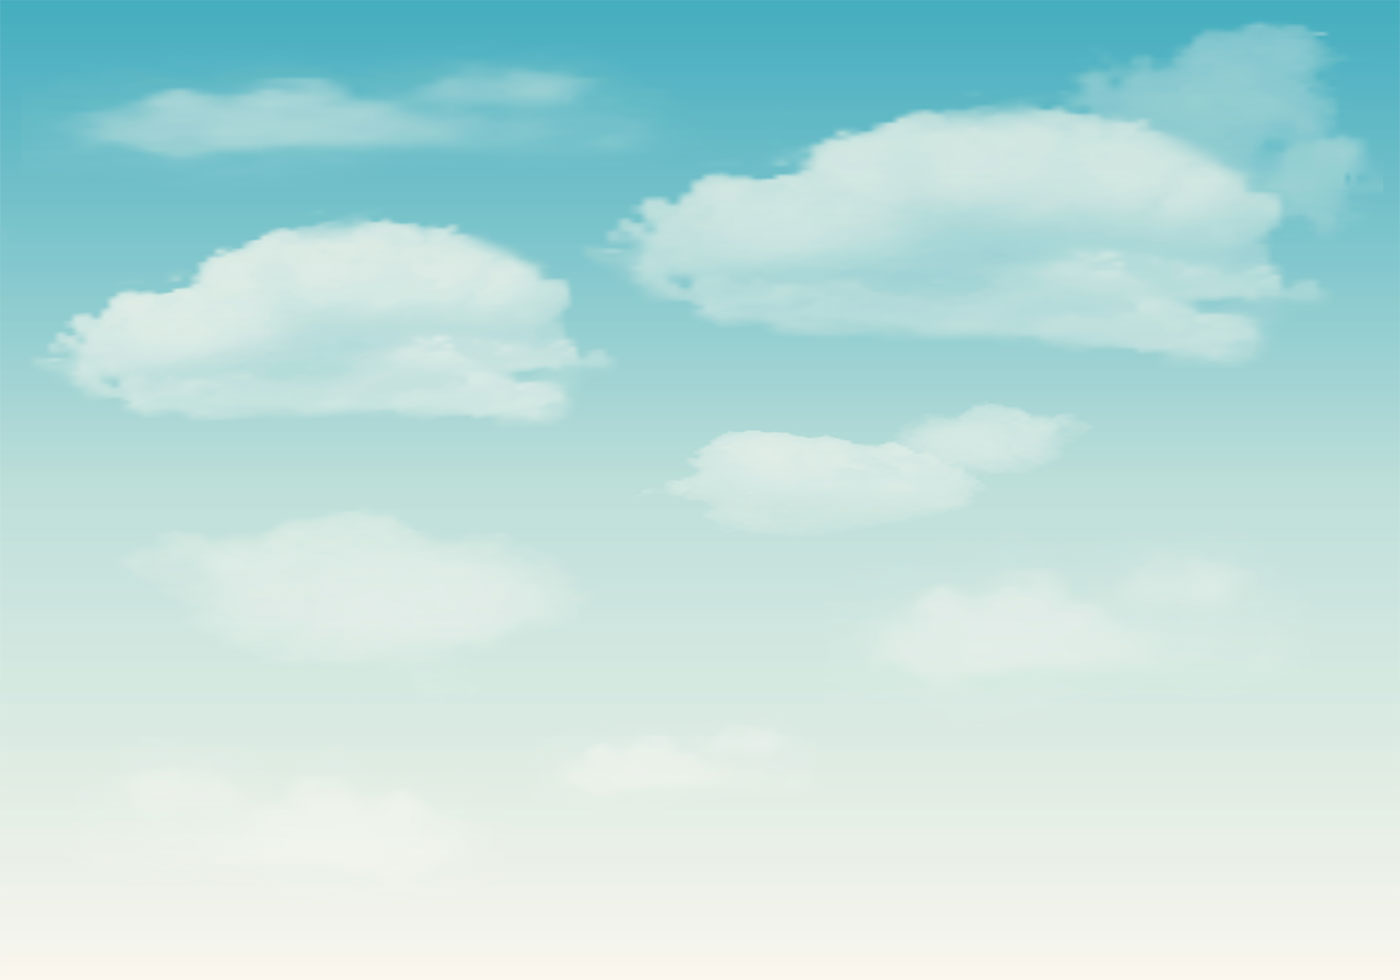 Clouds on blue sky psd free photoshop brushes at brusheezy - Hd clouds for photoshop ...